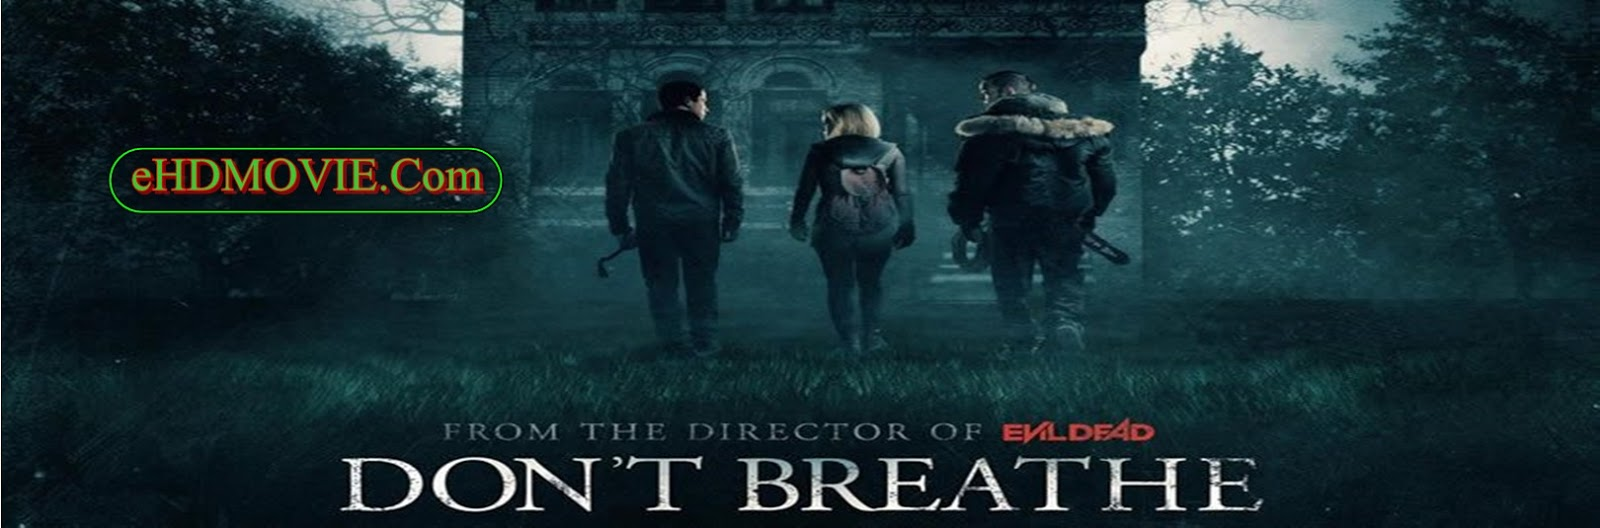 Don't Breathe 2016 Full Movie English 720p - HEVC - 480p ORG BRRip 250MB - 350MB - 600MB ESubs Free Download